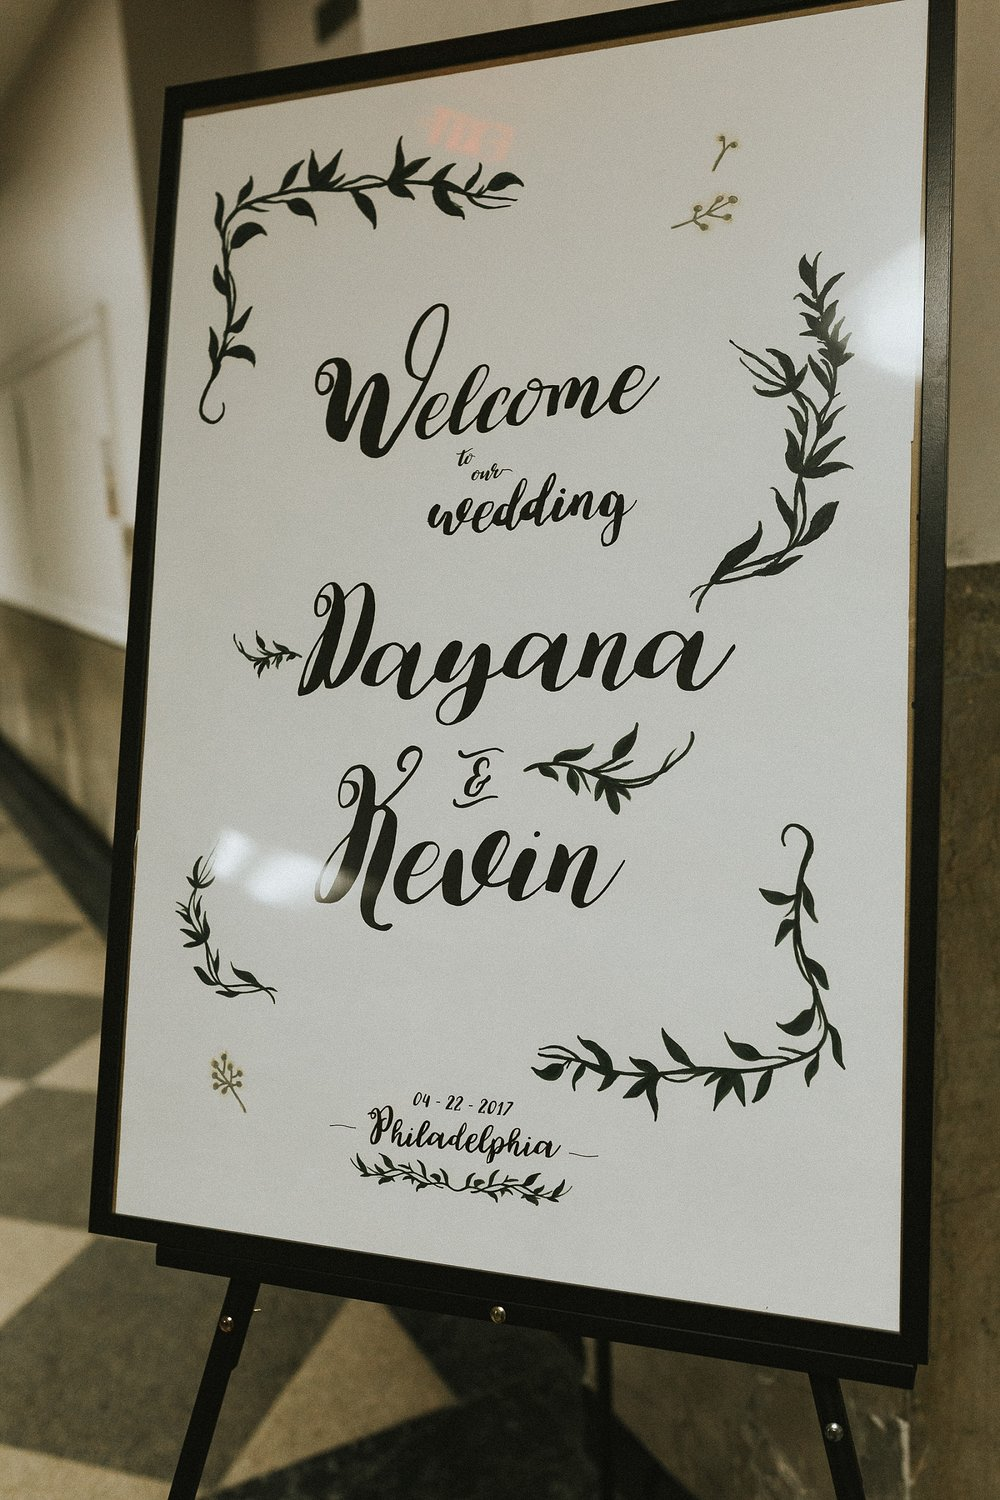 Wedding Welcome Sign for wedding in Philadelphia Pennsylvania at Old St. Mary's Church and Building BOK